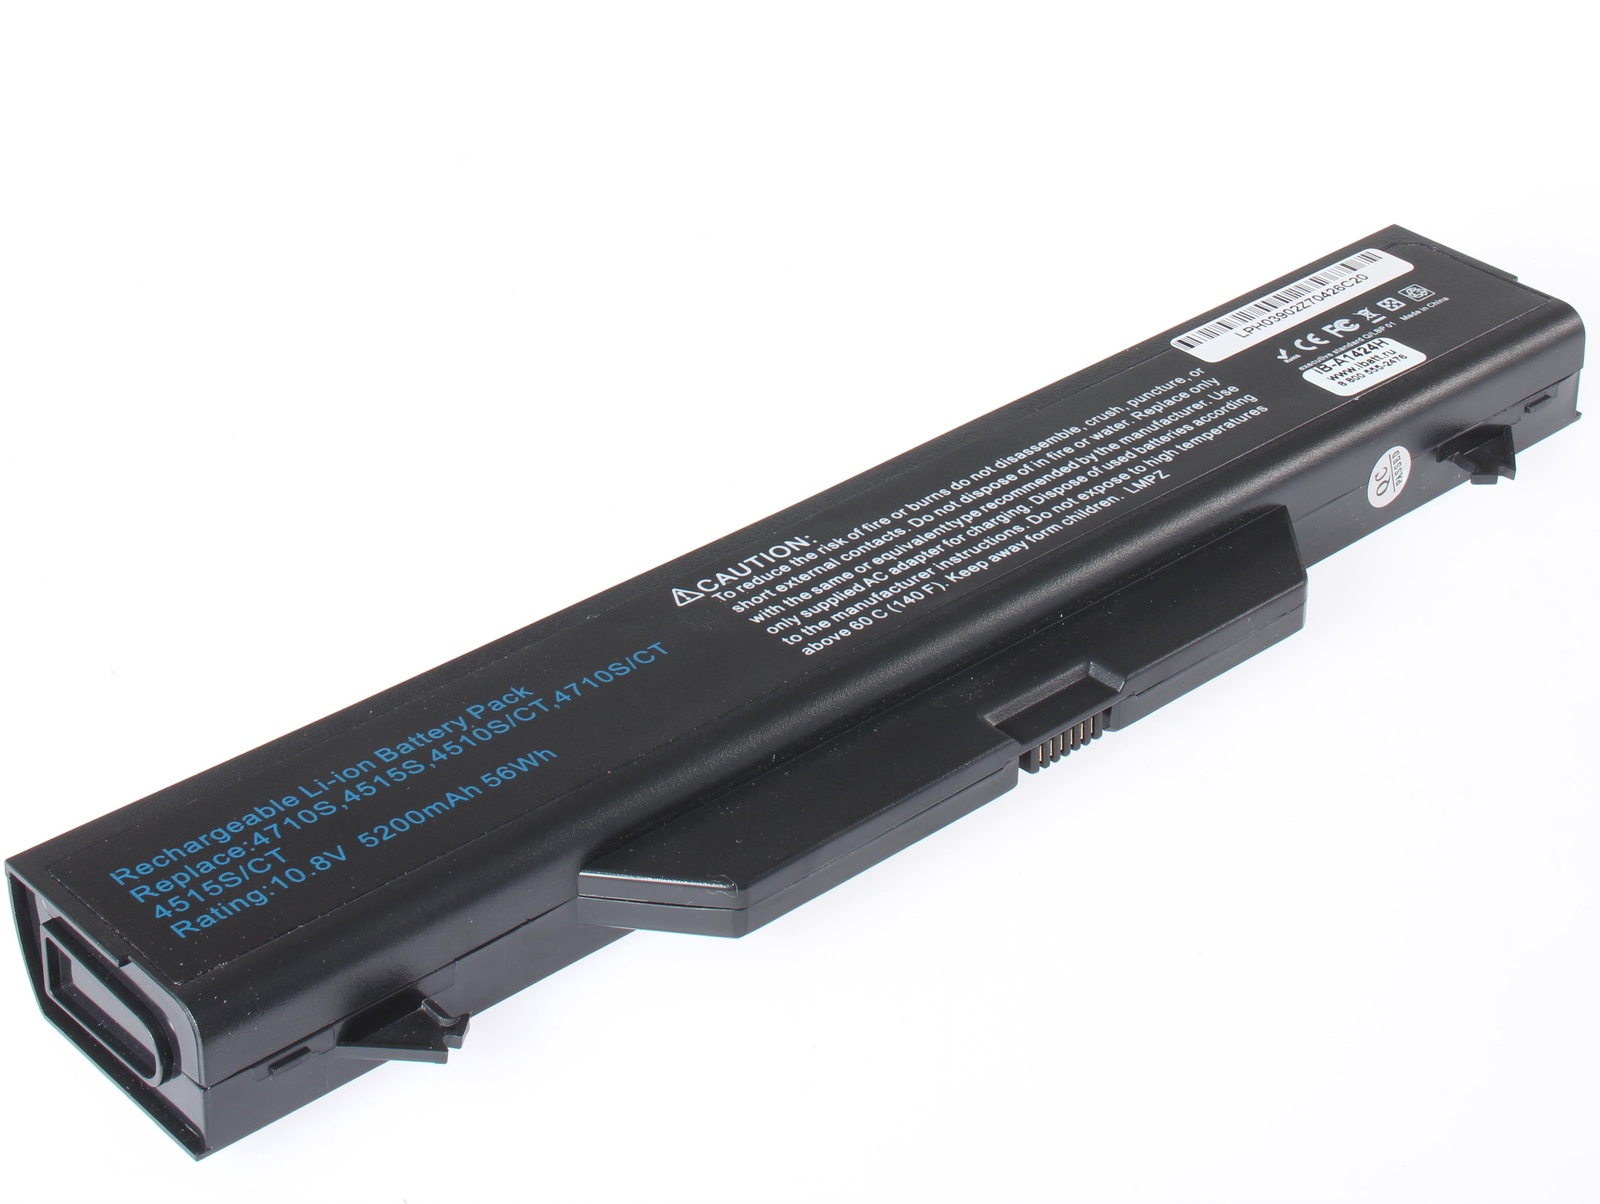 Аккумуляторная батарея iBatt iB-T1-A1424H 5200mAh для ноутбуков HP-Compaq ProBook 4510s, ProBook 4720s, ProBook 4515s, ProBook 4515s (VC378ES), ProBook 4720s (XX802EA), ProBook 4515s (VQ653ES), ProBook 4515s (VQ678ES), ProBook 4510s (VC315EA), 585219 001 for hp probook 4415s 4515s 4416s motherboard 4510s notebook for hp probook 4415s notebook for amd free shipping